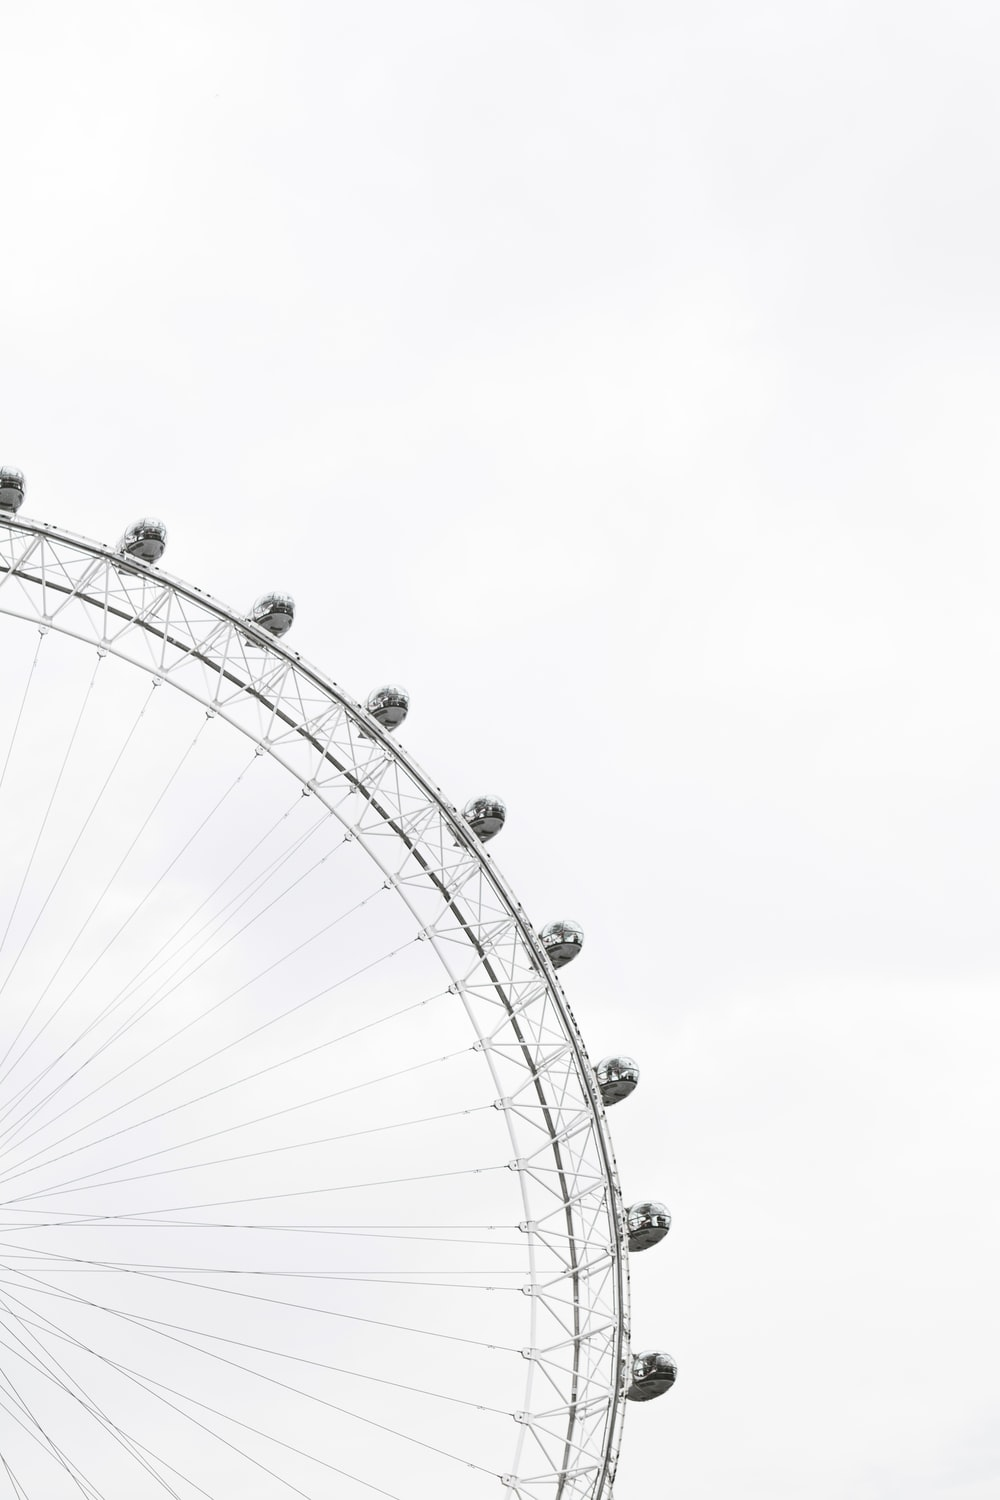 Part of a ferris wheel with enclosed cars for riding in and people in the cars against an overcast sky